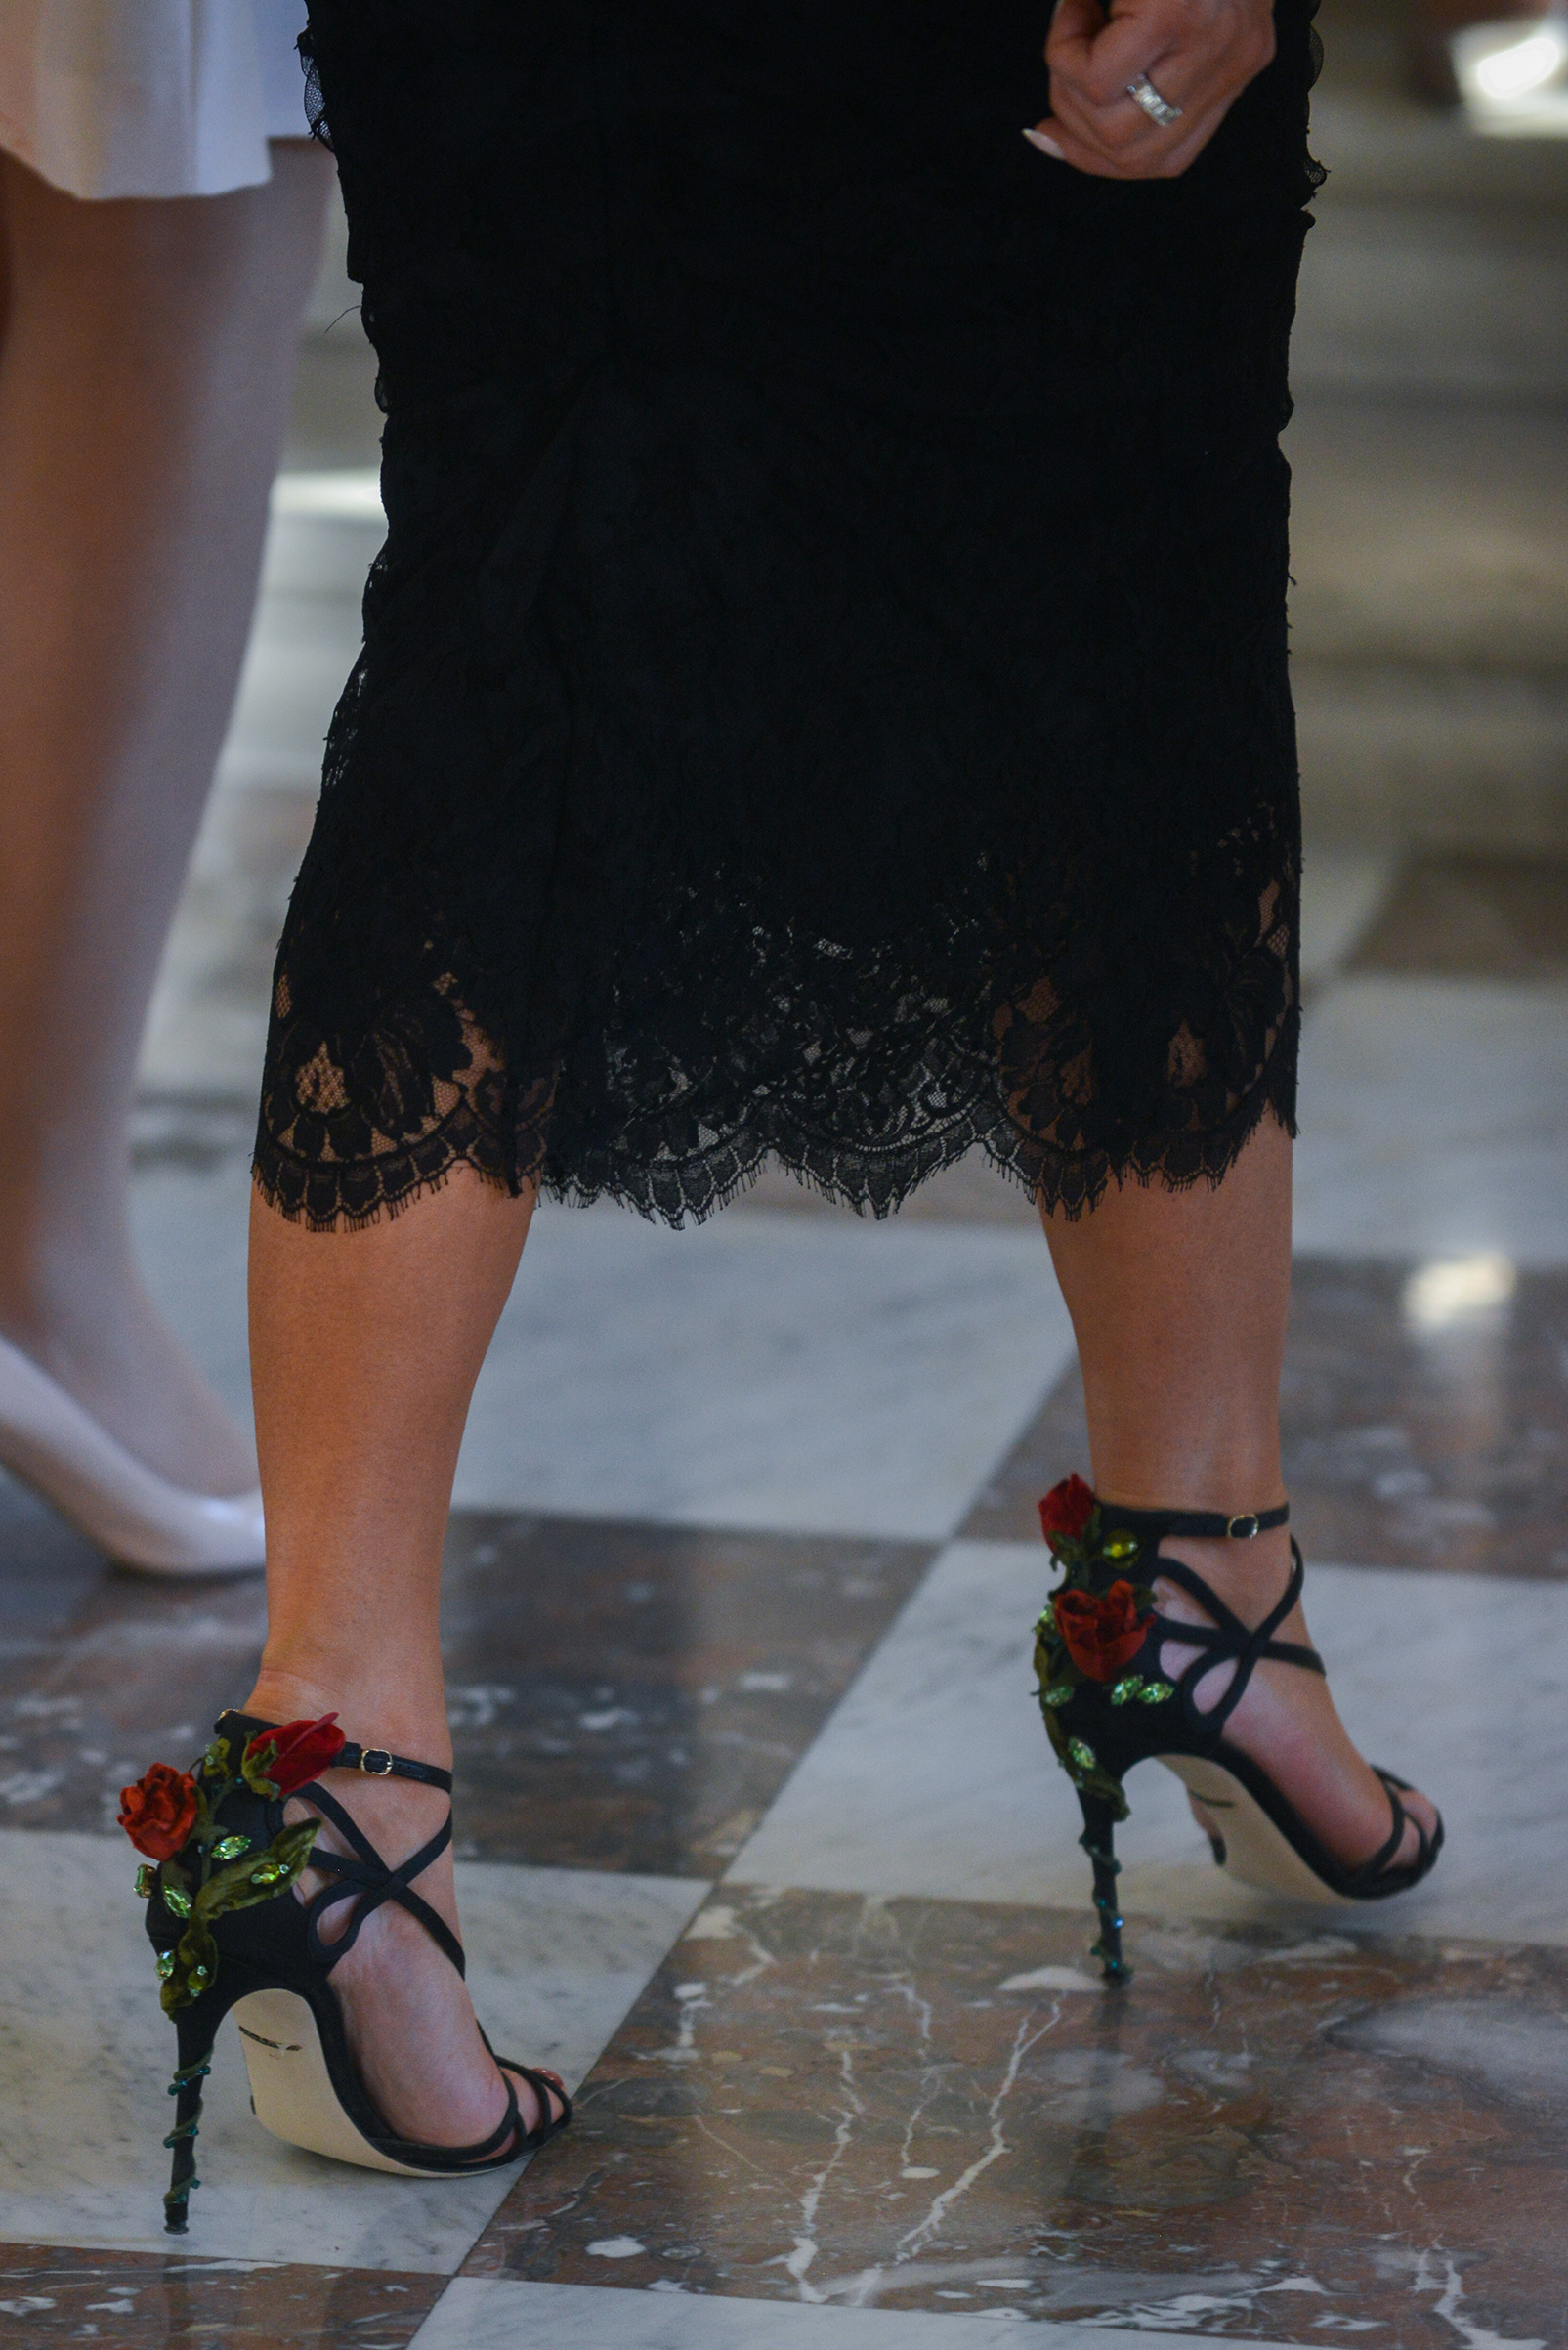 First lady Melania Trump wearing Dolce & Gabbana shoes,arriving for the ladies group picture at the Royal Castel of Laeken, Brussels, Belgium, May 25, 2017.